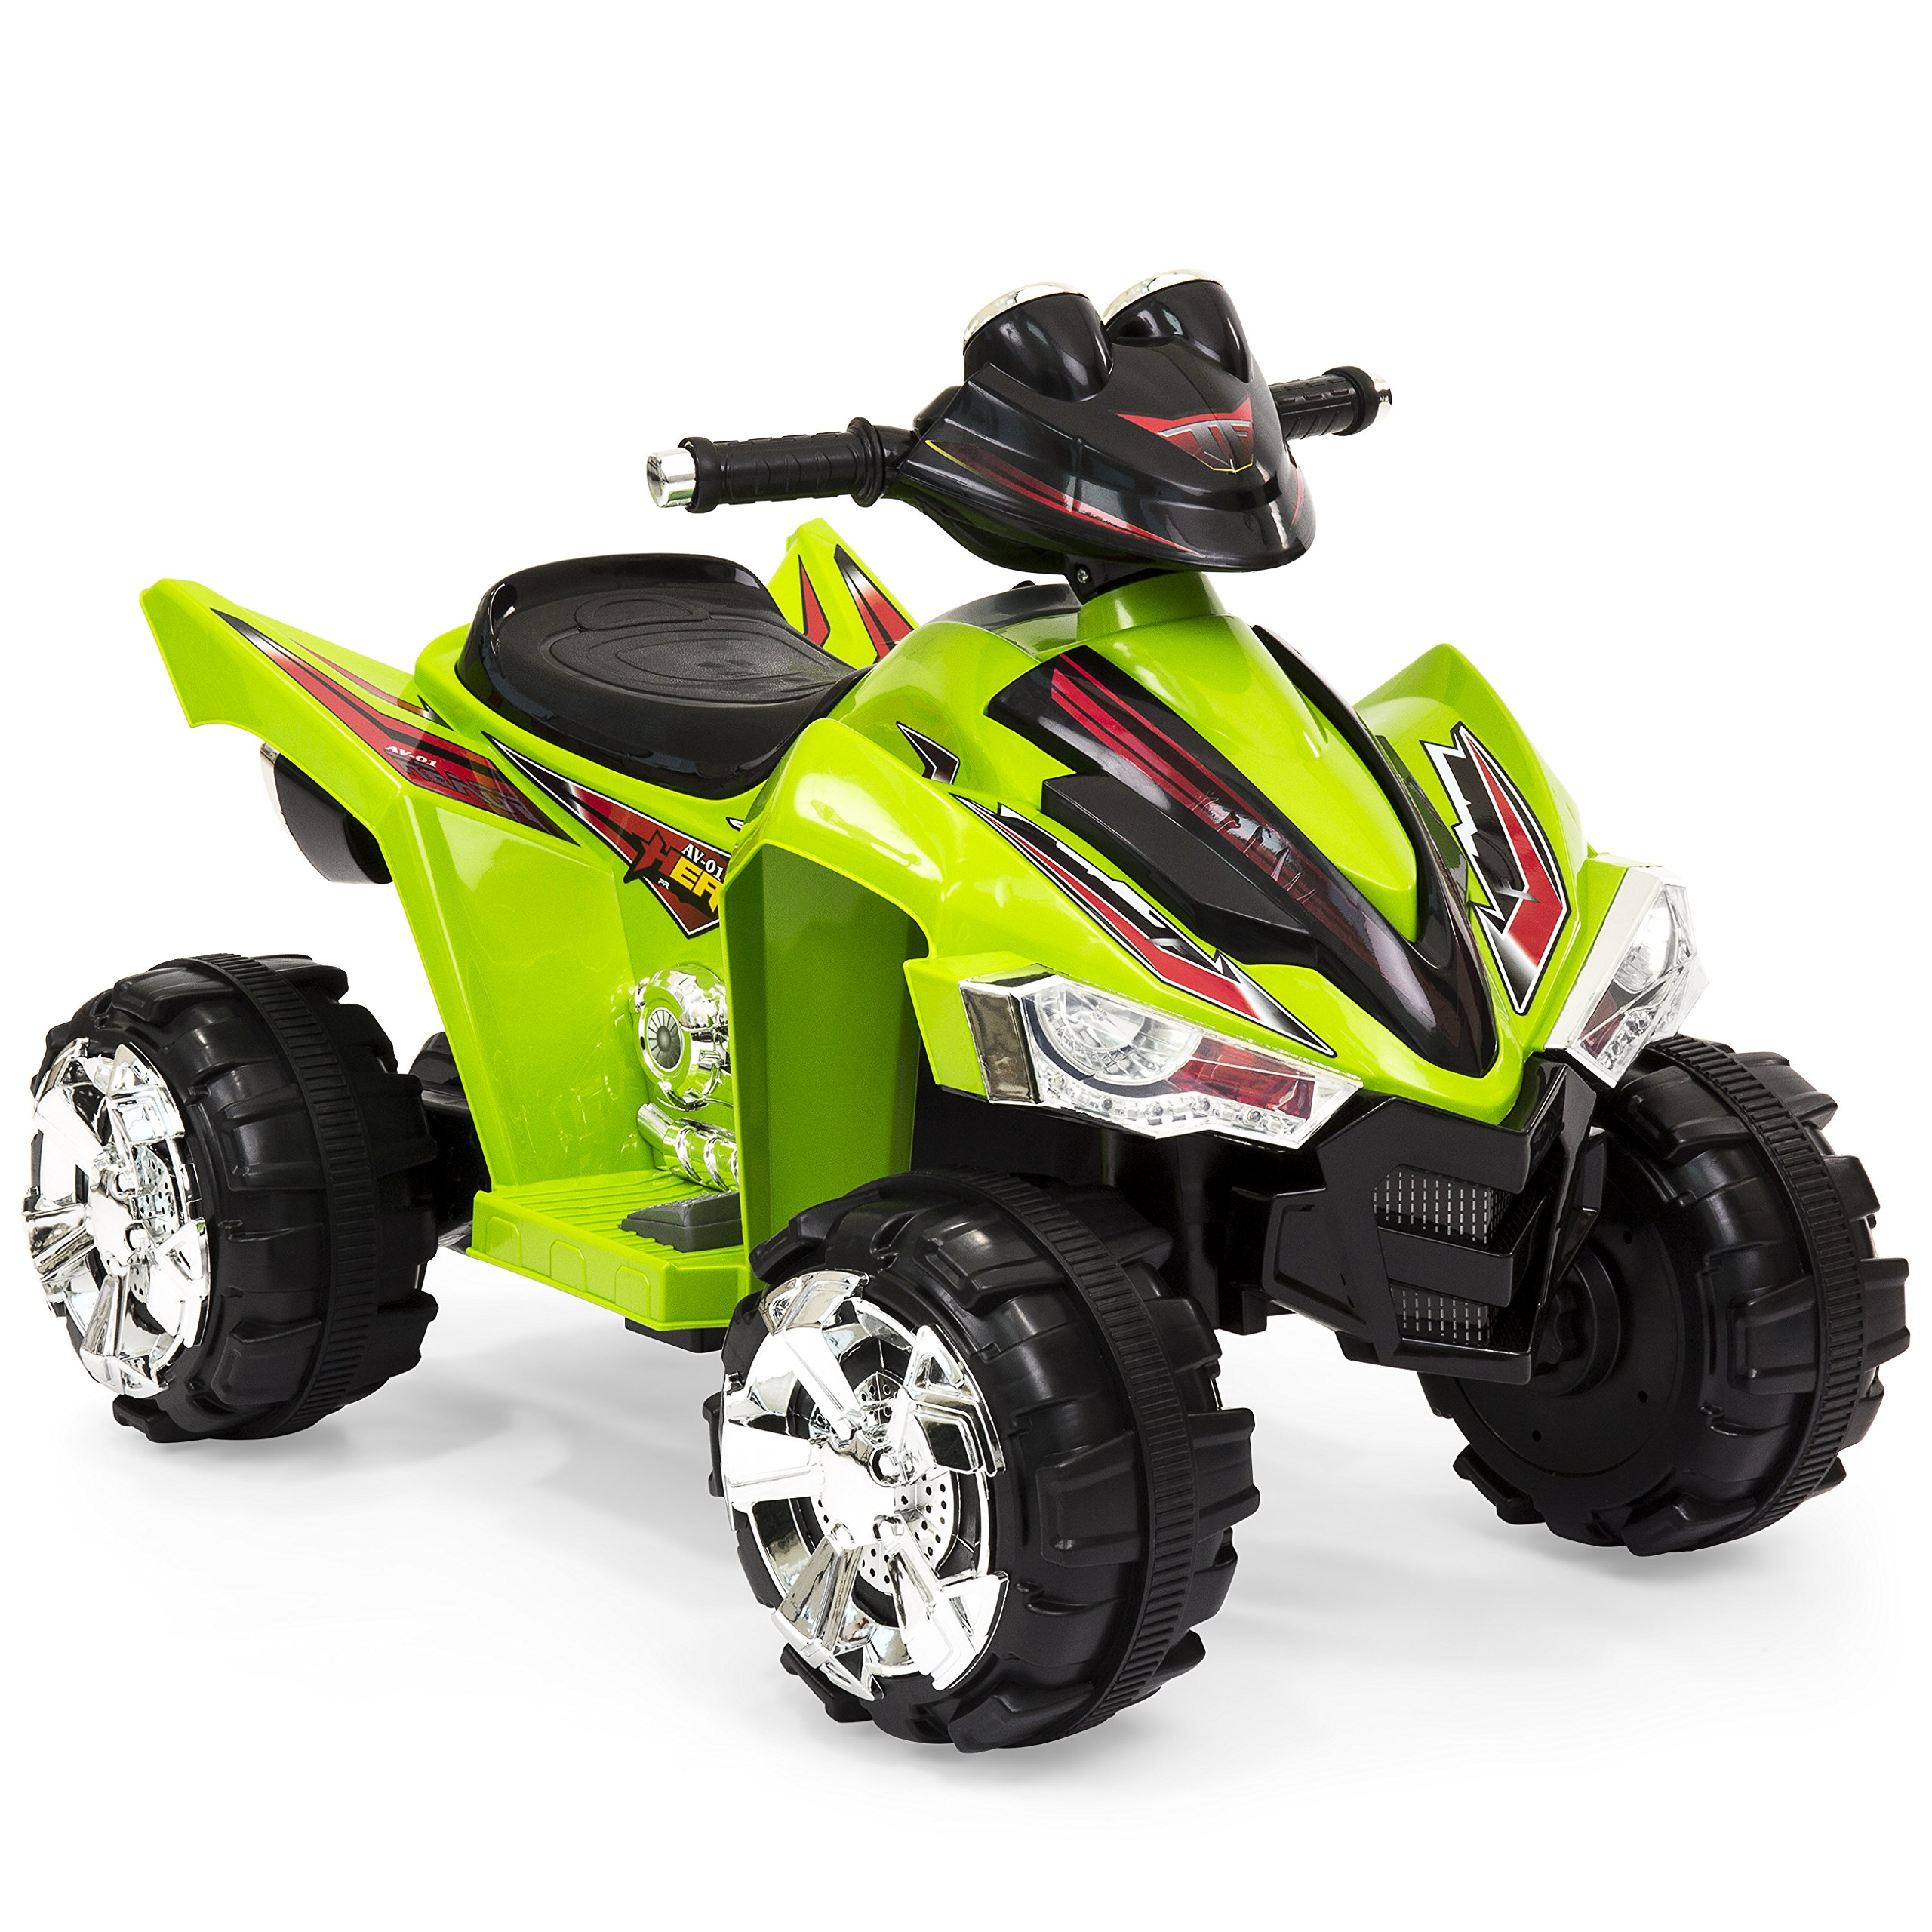 Best Choice Products 12V Kids Powered Ride On ATV Quad 4 Wheeler Led Lights, Music (Green) by Best Choice Products